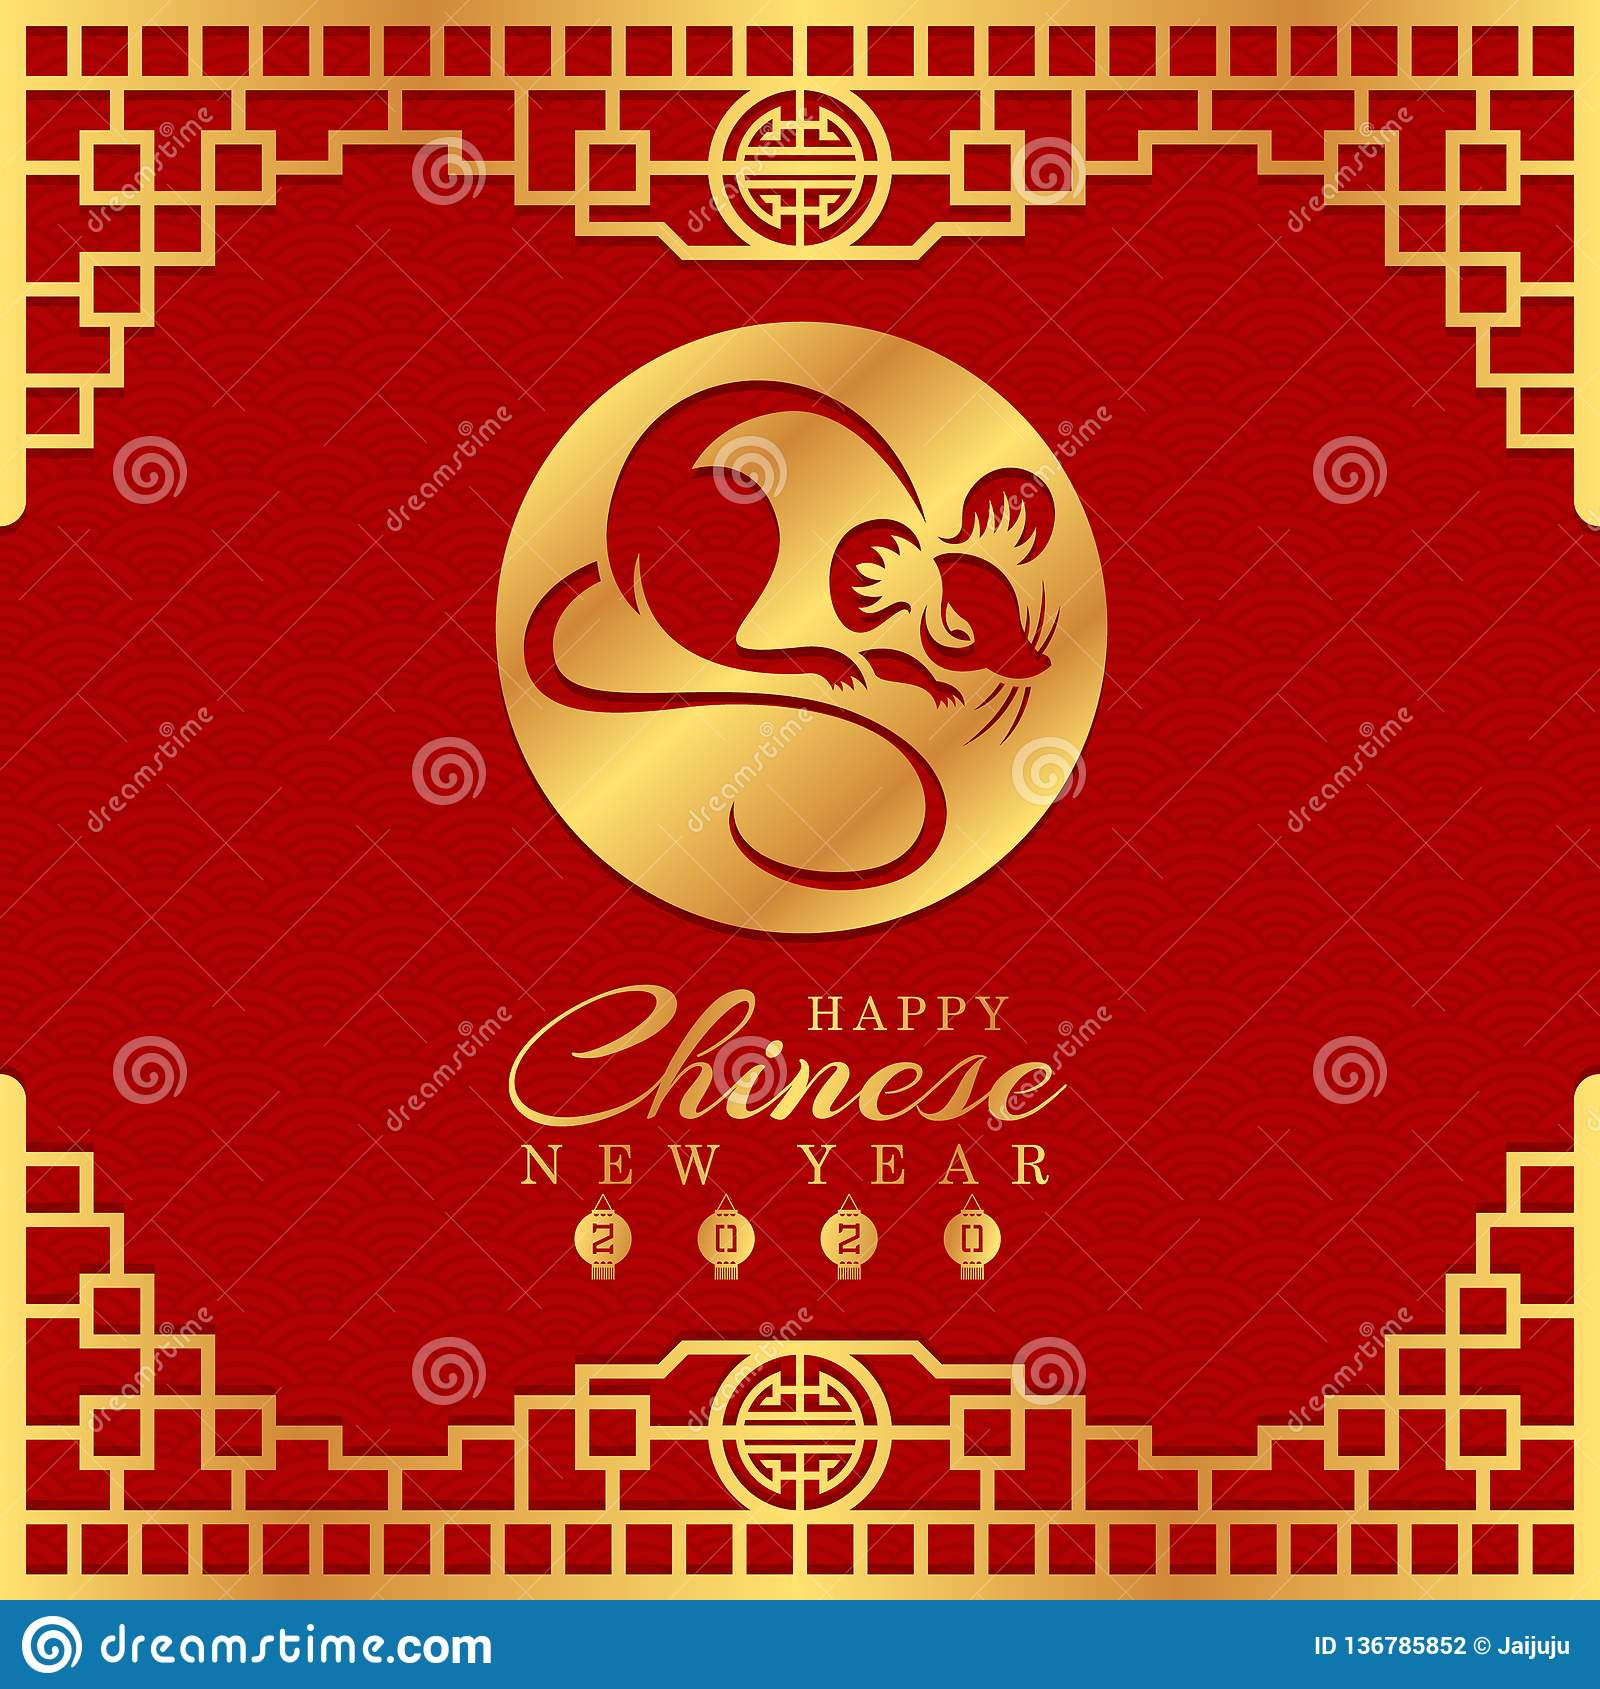 Happy chinese new year 2020 card with gold rat chinese zodiac in circle sign on red background and gold china frame